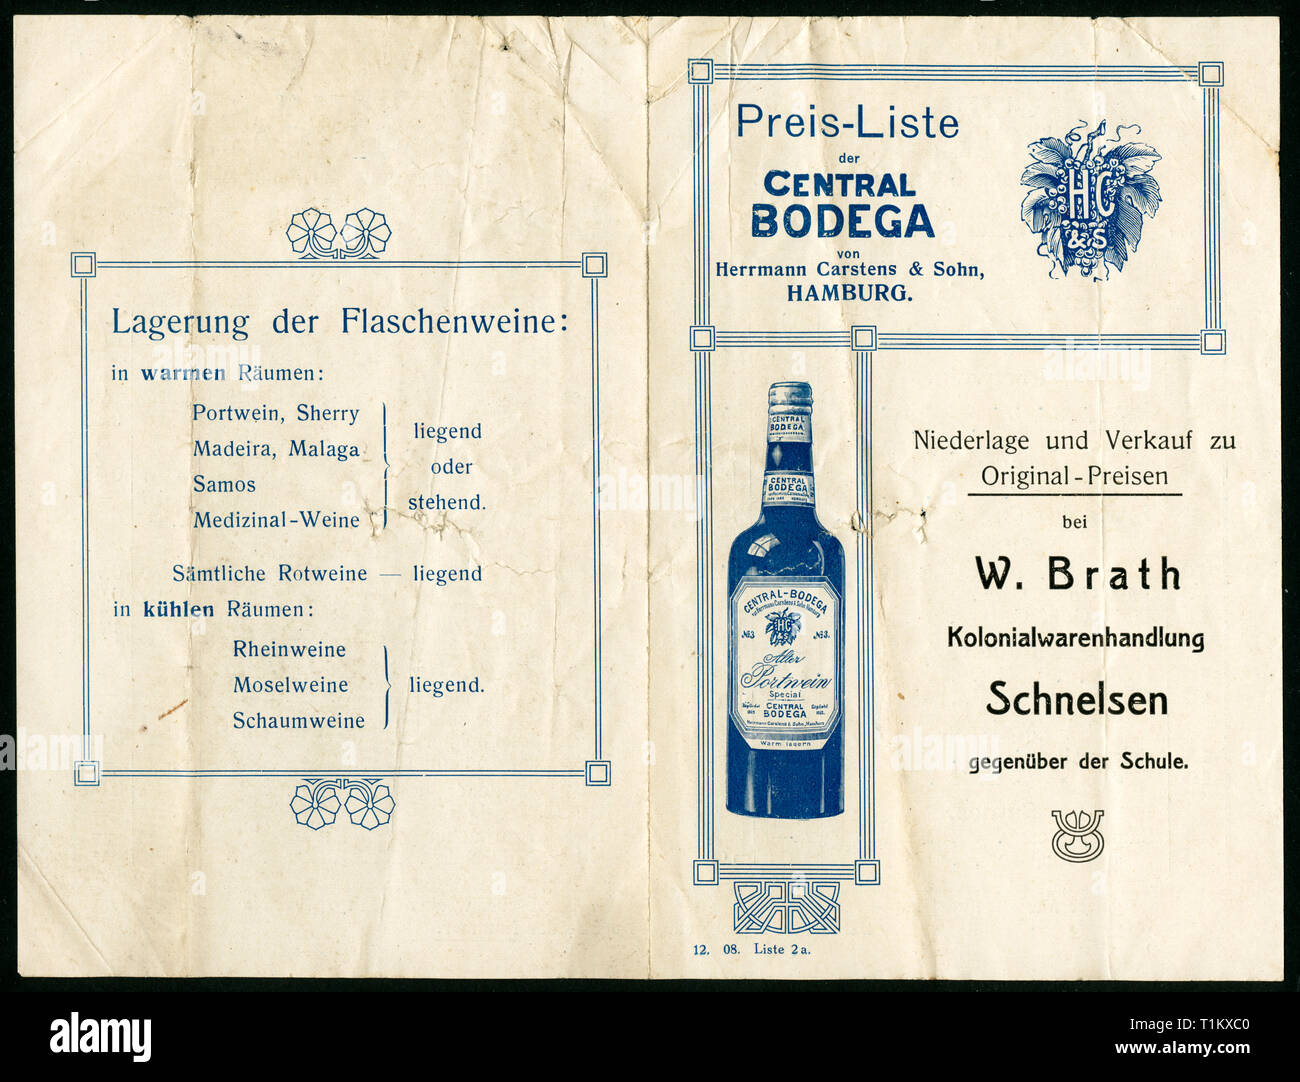 advertising, semiluxury,  Germany, Hamburg, Schnelsen, promotional brochure  / front page and back page / of the shop ' Central Bodega ' of Herrmann Carstens, wine dealer, with the printing of the colonial product business of W. Brath in Schnelsen, around 1900-1920, Additional-Rights-Clearance-Info-Not-Available - Stock Image